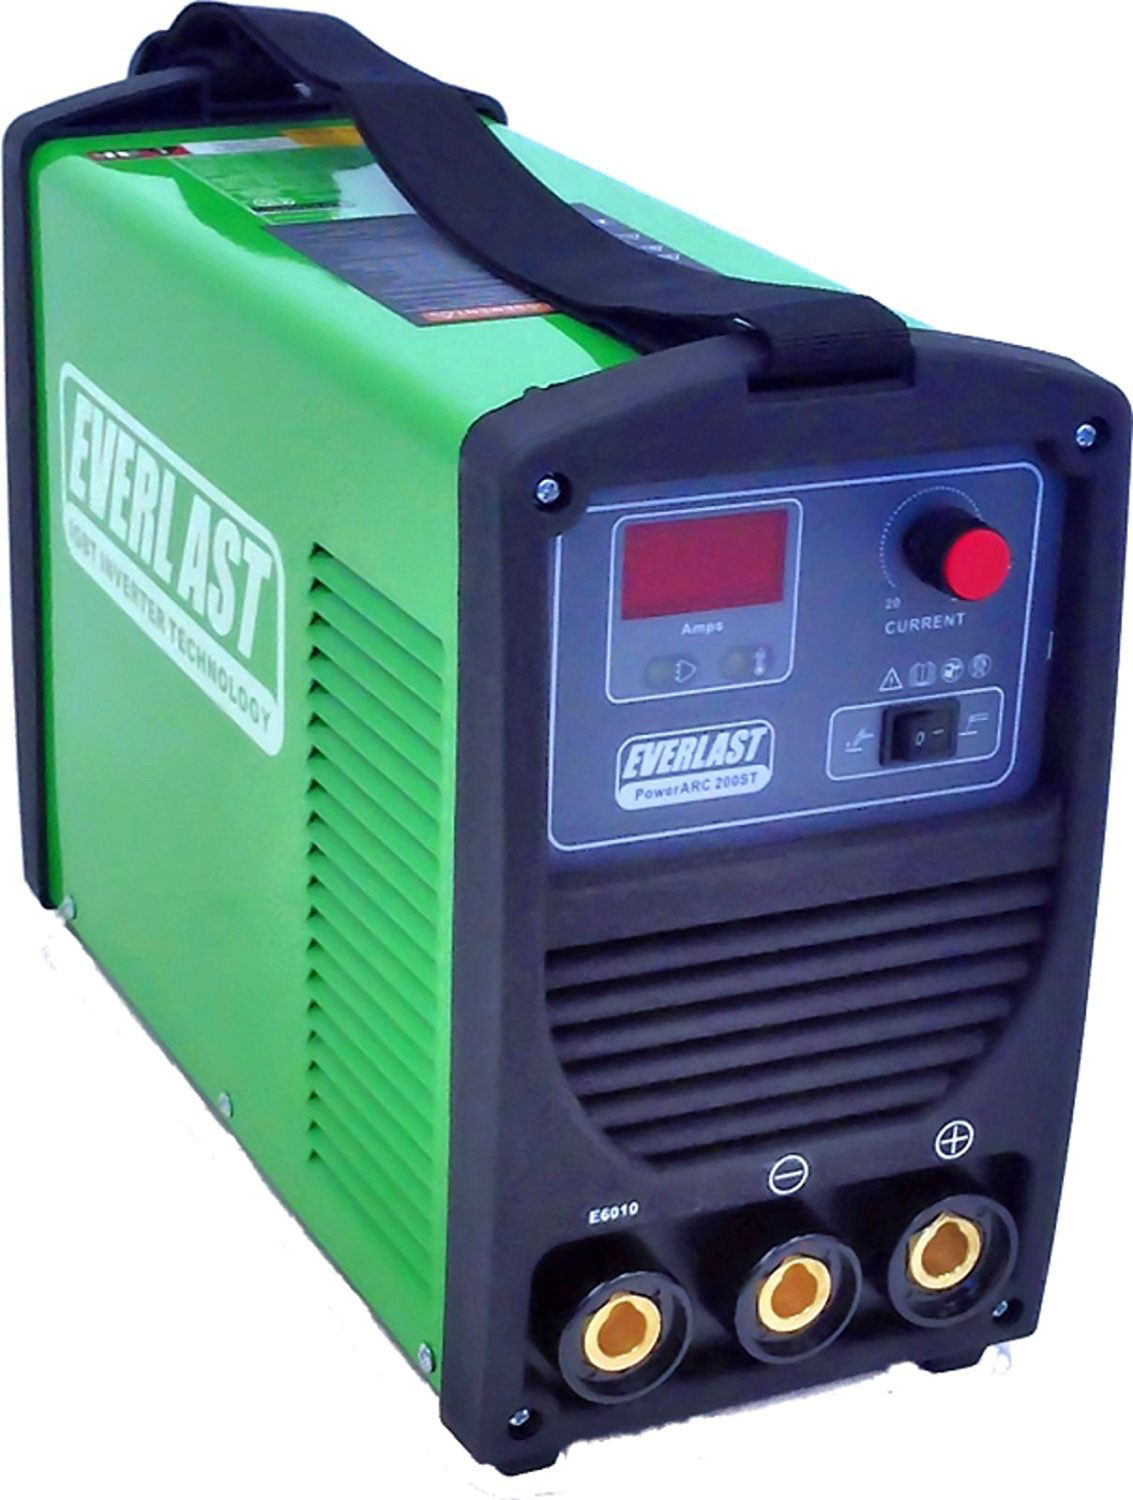 TIG Welder Reviews